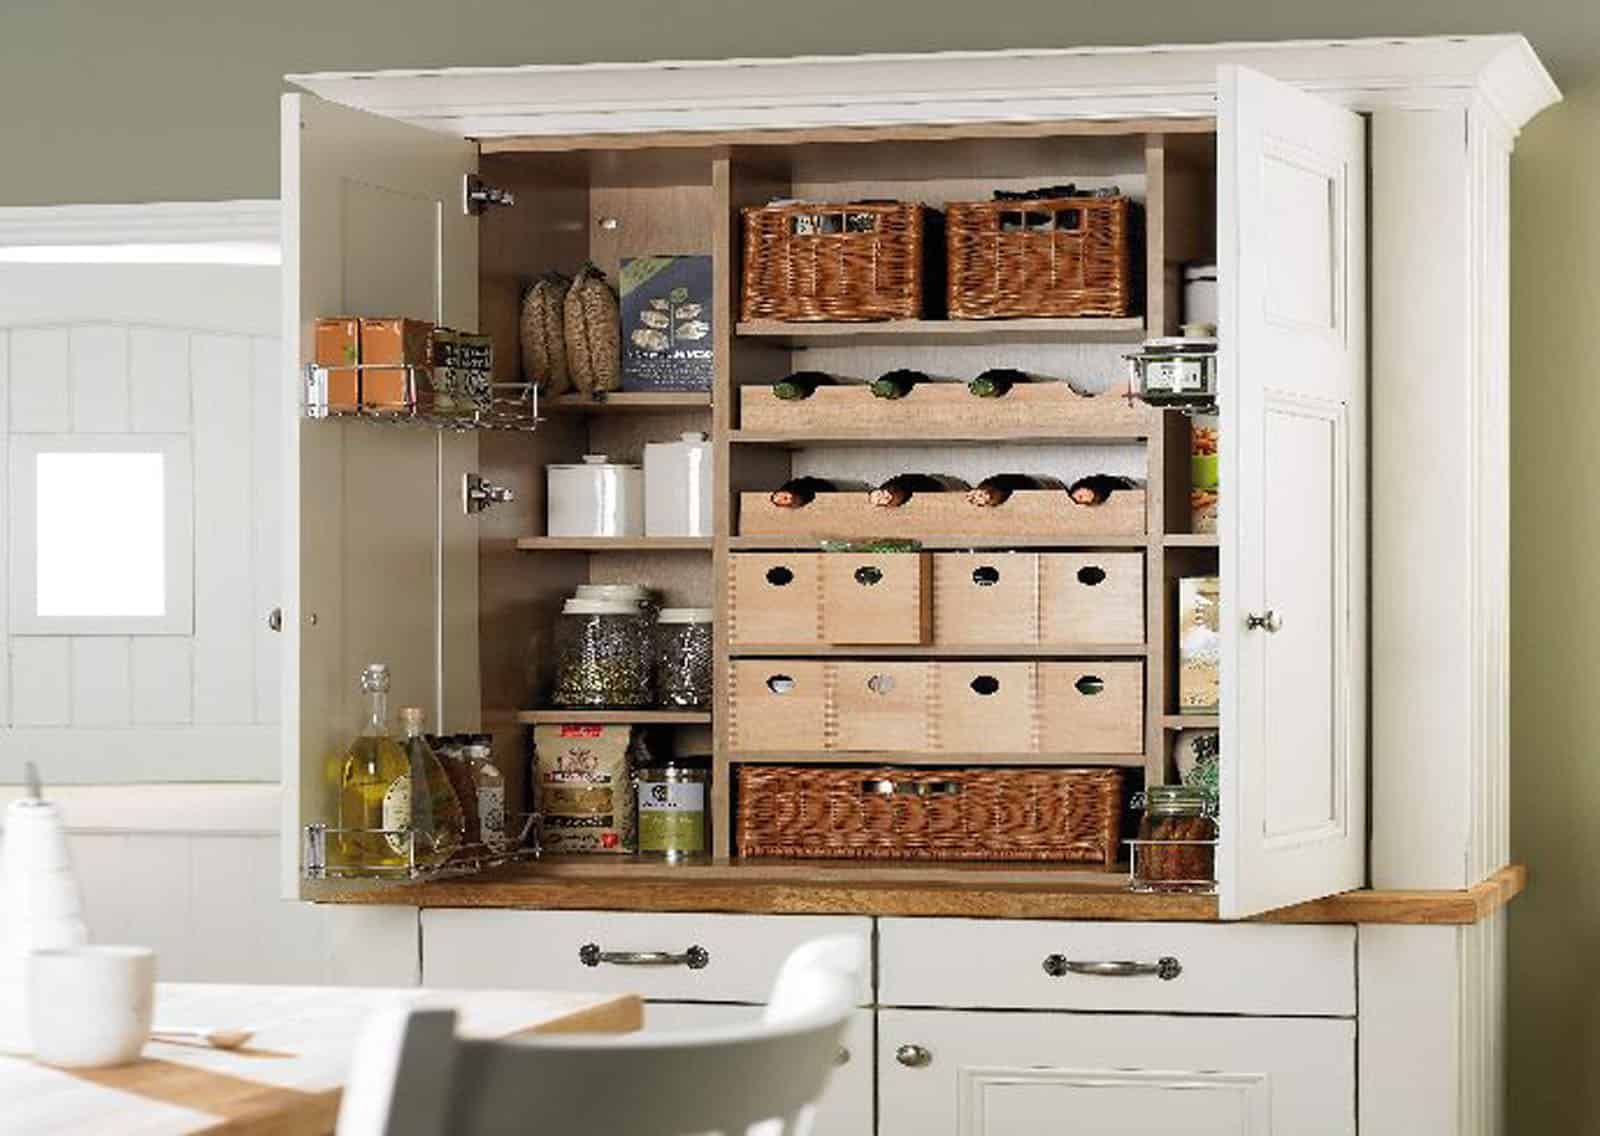 How To Choice A Smart Pantry Door 10 Ingenious Ideas In 2020 Kitchen Pantry Storage Cabinet Pantry Furniture Kitchen Pantry Storage